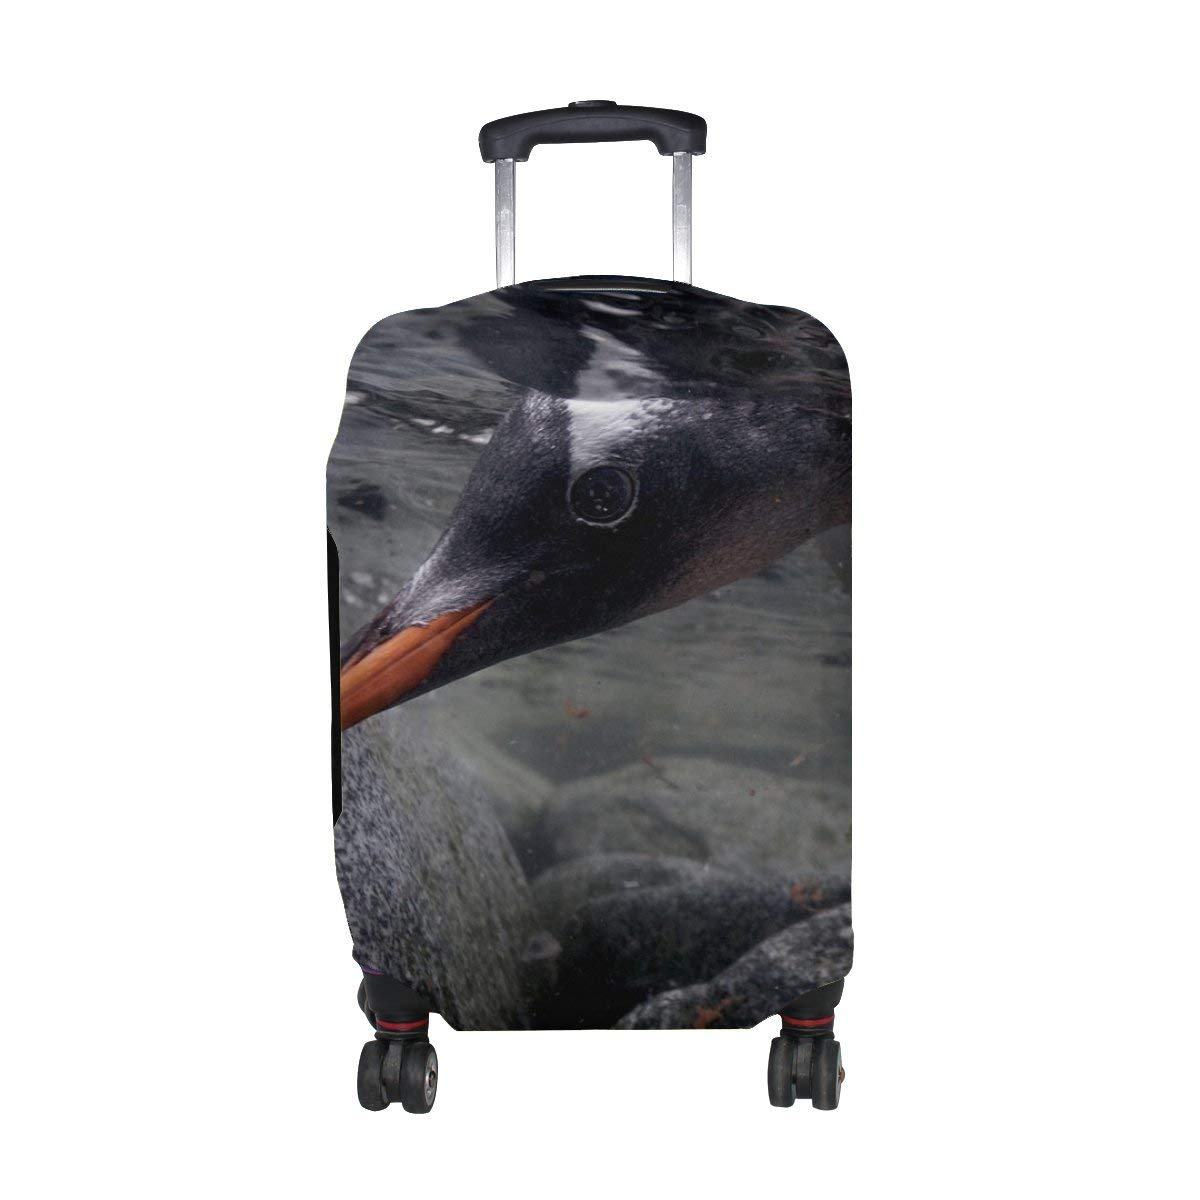 6271ae0f0 Get Quotations · Penguin Rocks Water Head Feet Pattern Print Travel Luggage  Protector Baggage Suitcase Cover Fits 18-